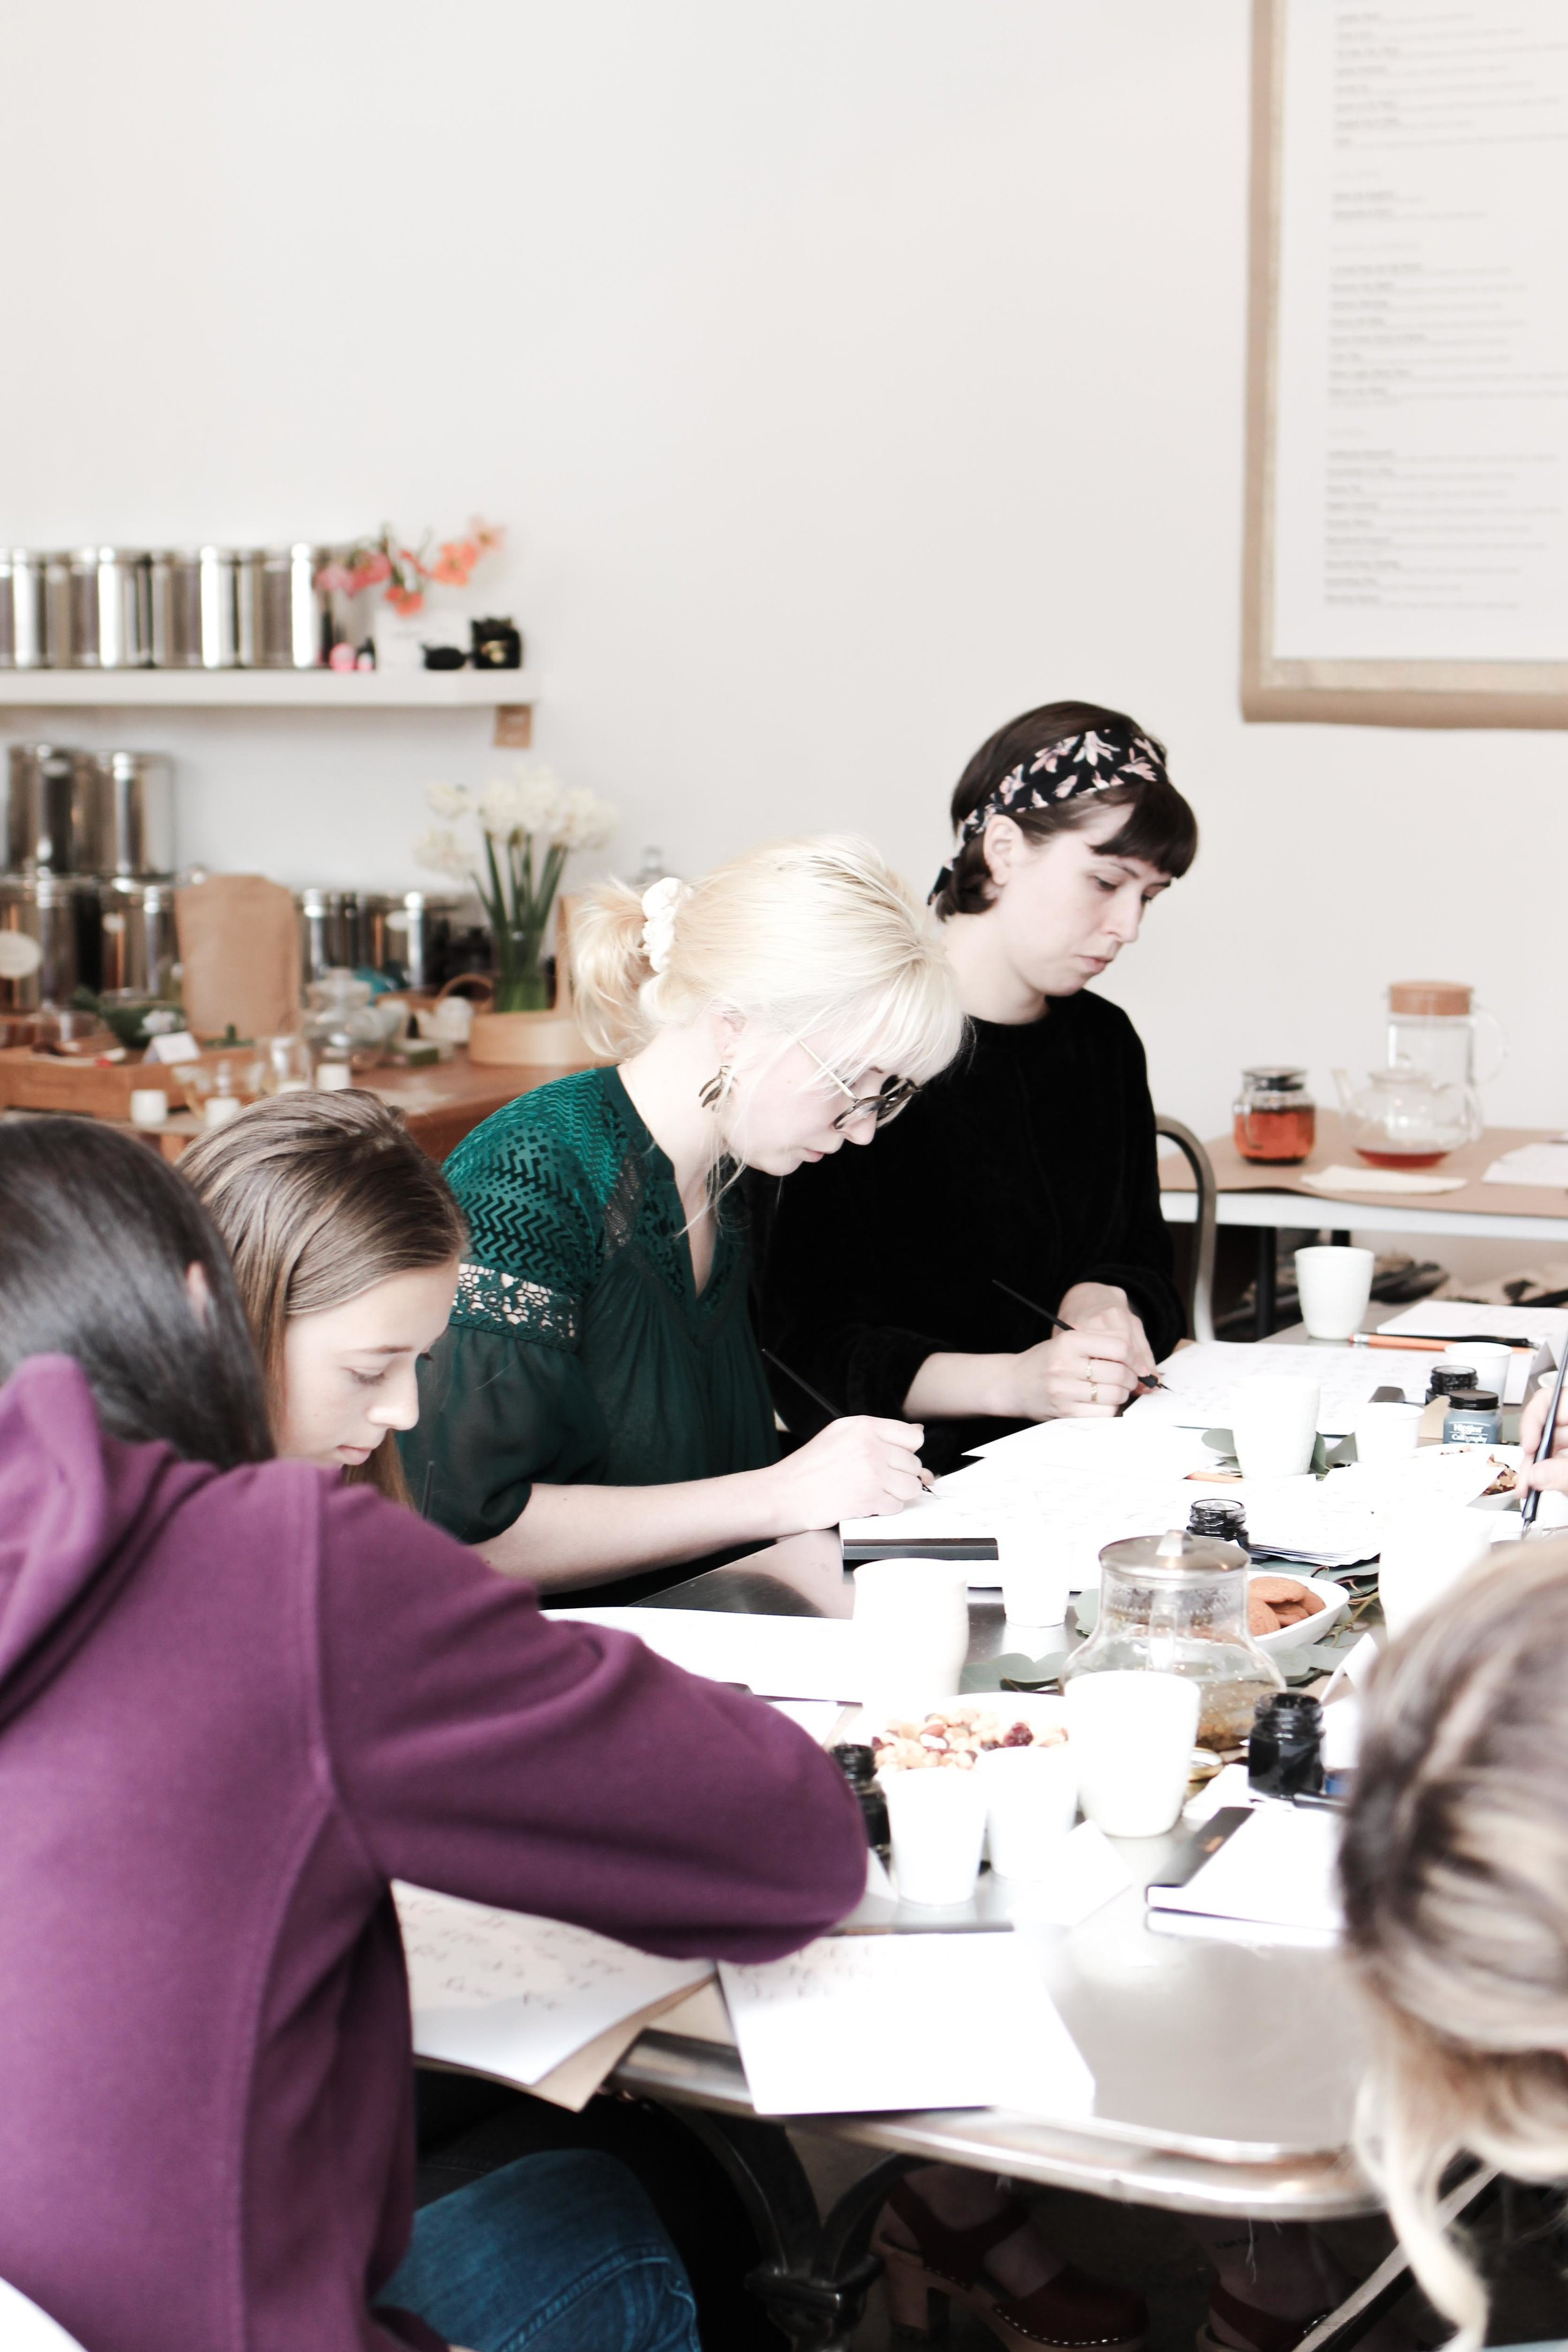 everglow handmade: intro to modern calligraphy workshop at t project